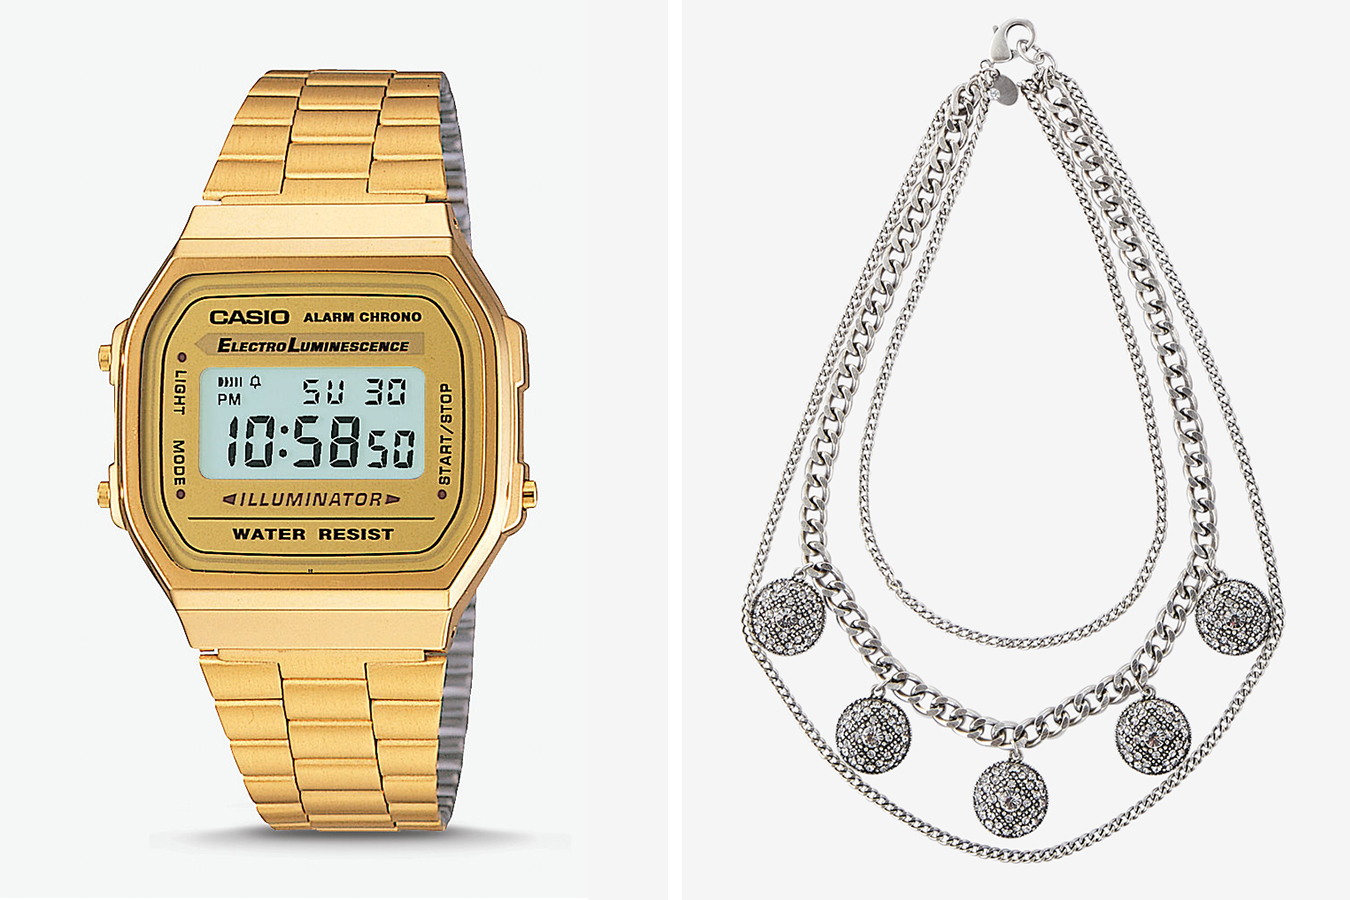 mens-vintage-casio-gold-digital-watch-womens-pave-station-layered-chain-statement-necklace